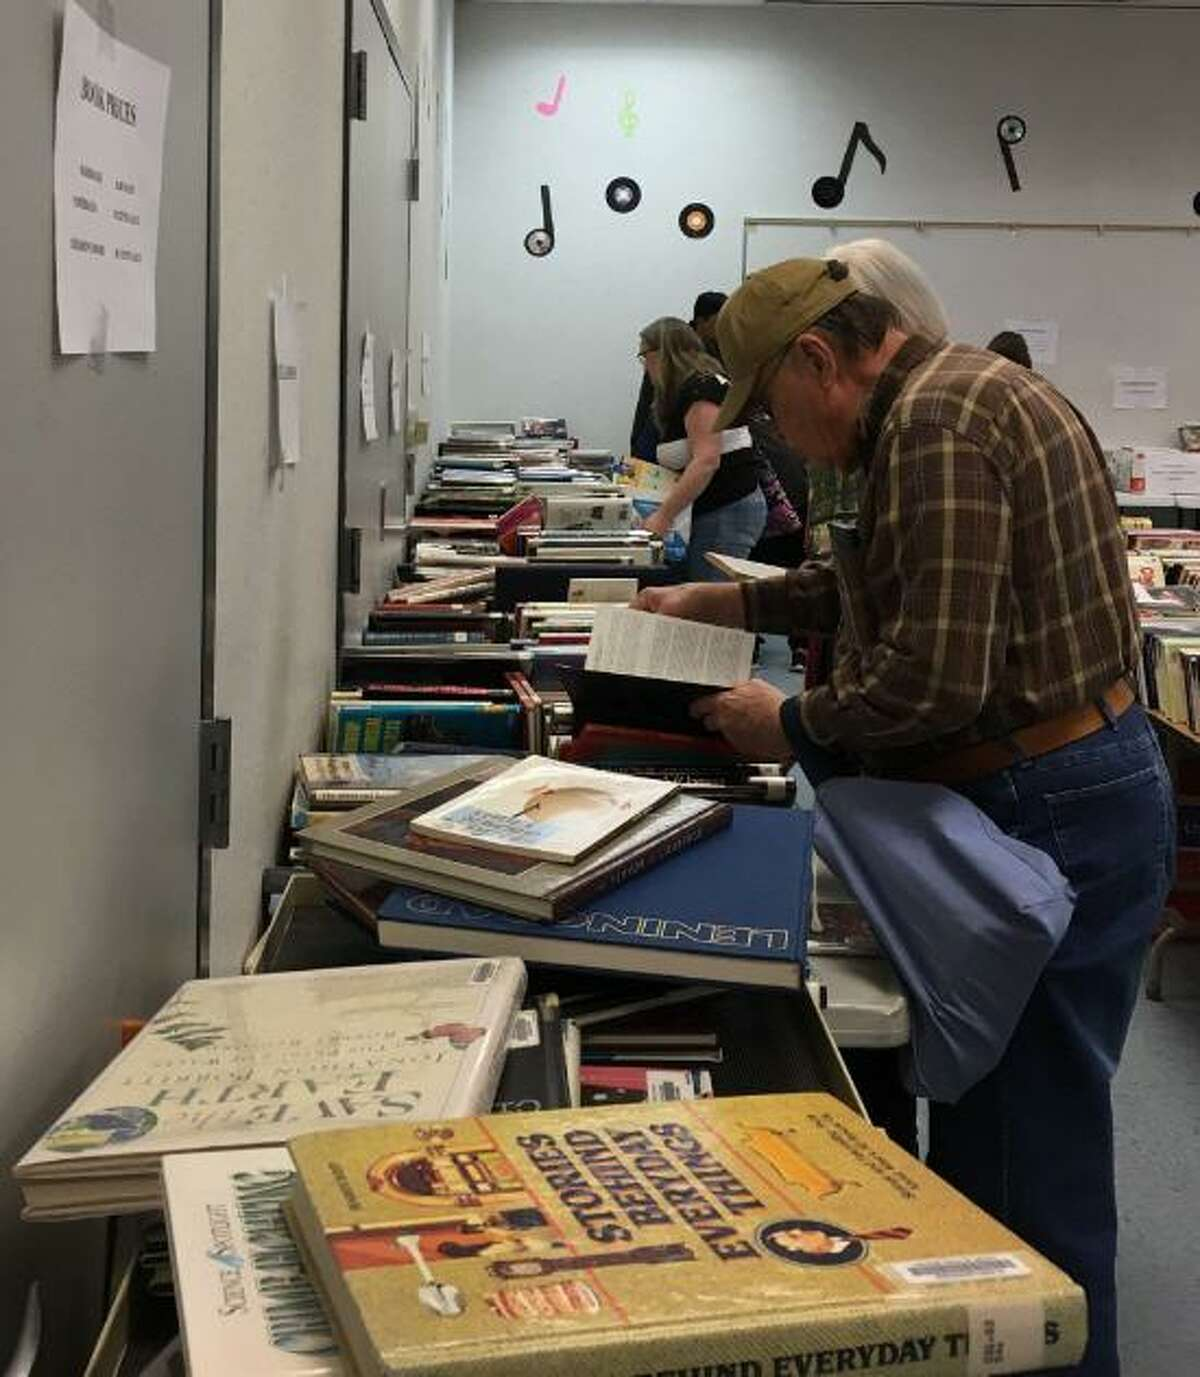 Friends of the Katy Library will hold their annual spring book sale on Saturday, March 14, at the Katy Branch Library at 5414 Franz Road. The sale will feature used books for adults and children. Hardback $1, Paperback 50 cents, Children's books 50 cents. All profits support Katy Library programs.